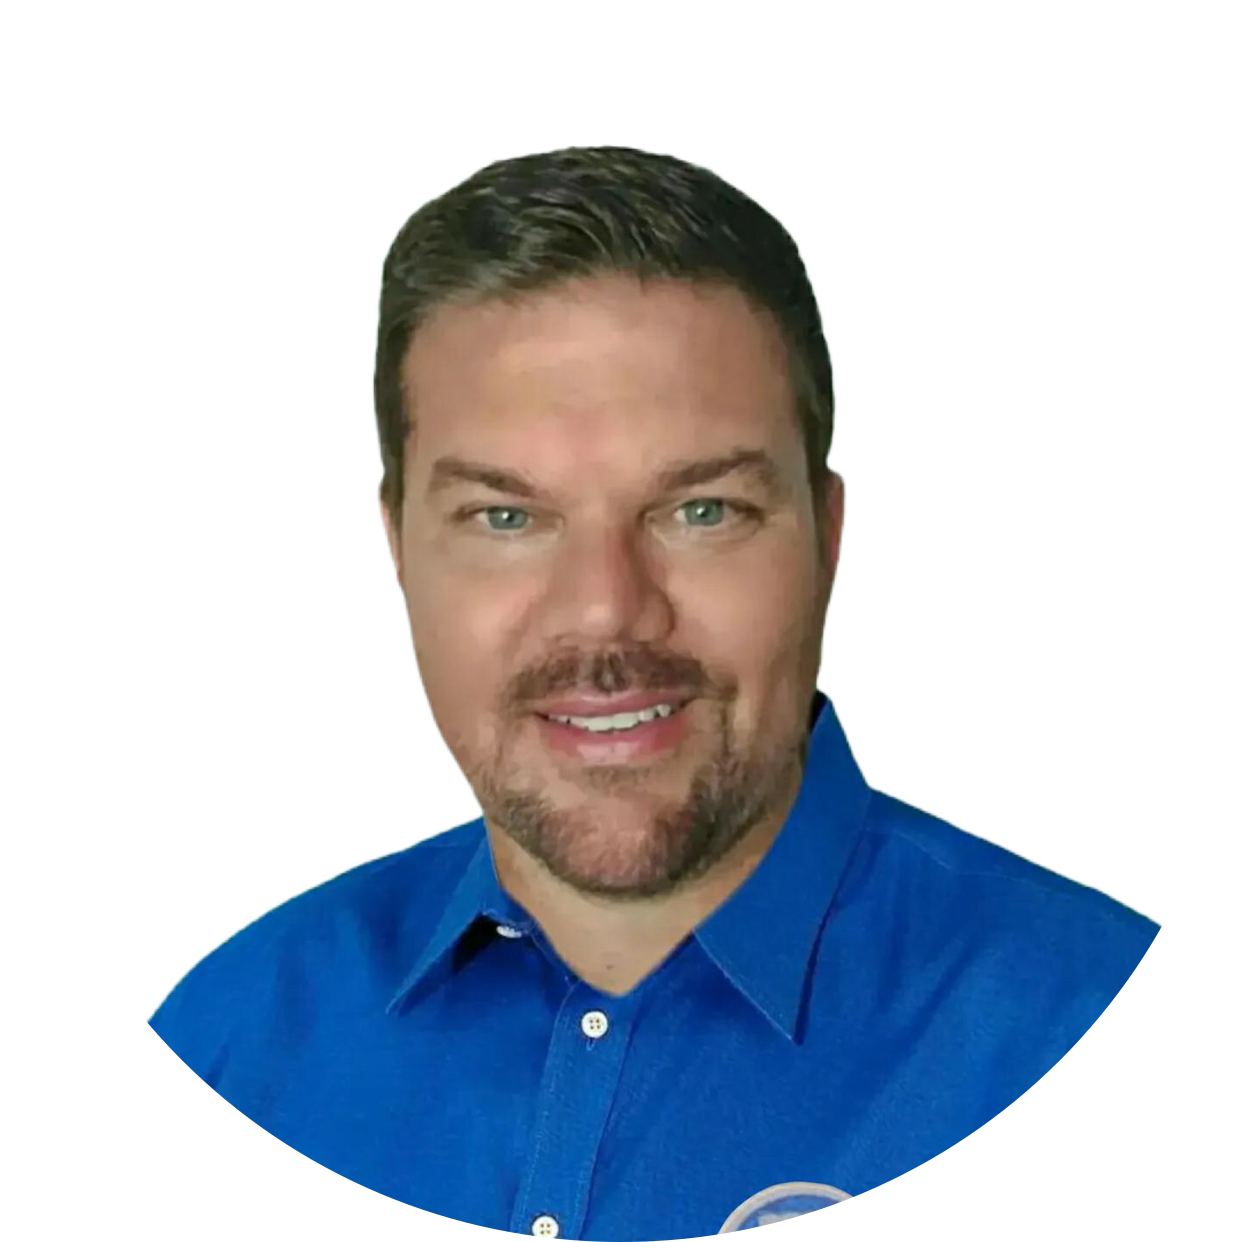 Ben Filippelli - Chief Technology Officer at Level5 Management | Managed IT Services Company